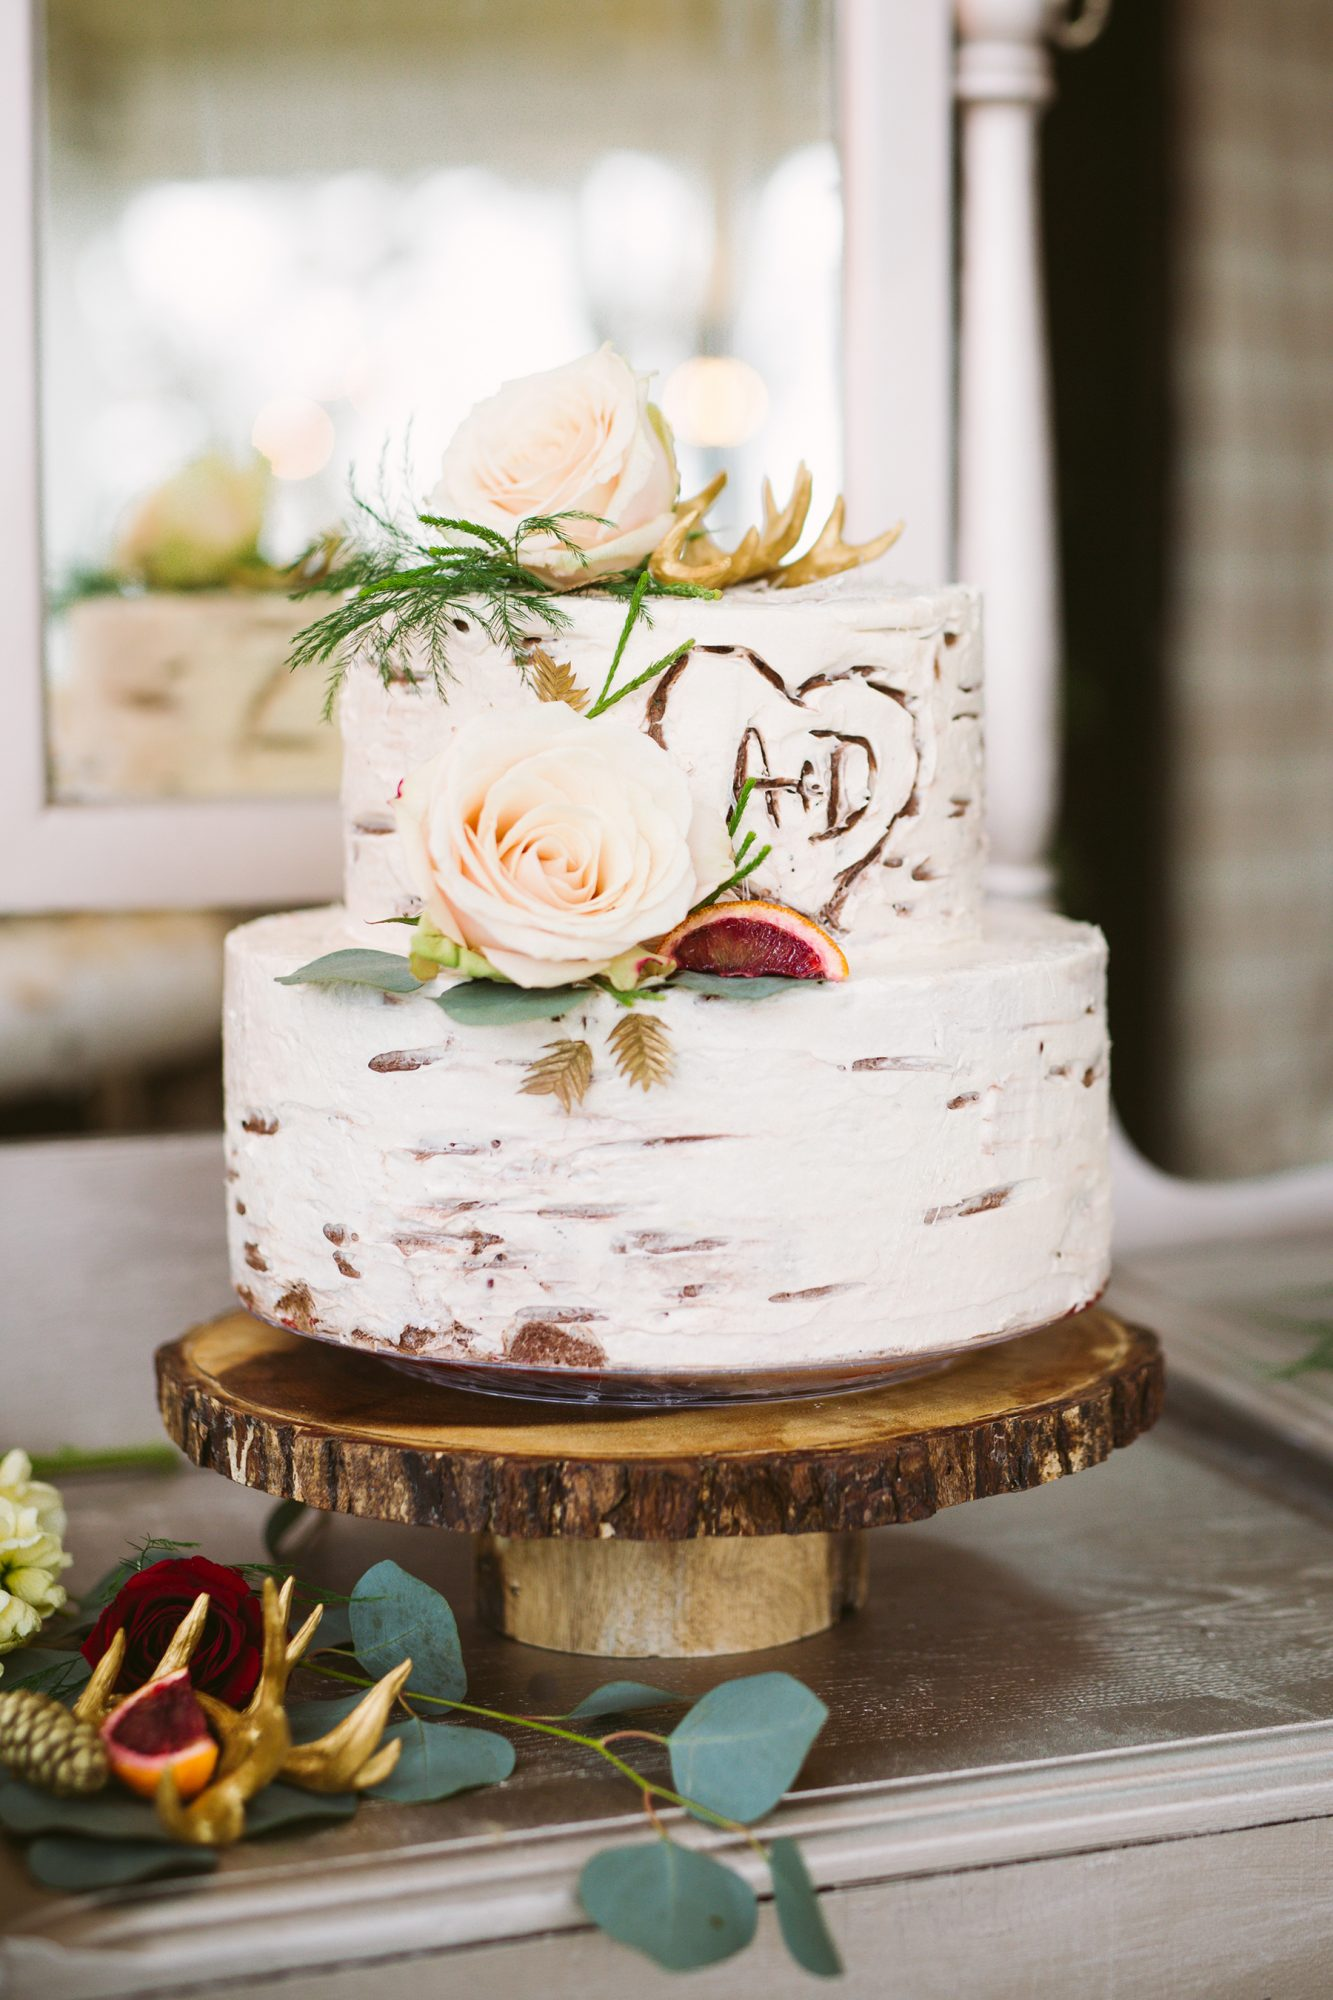 Birch Tree Wedding Cakes Are The Latest Fall Trend Martha Stewart